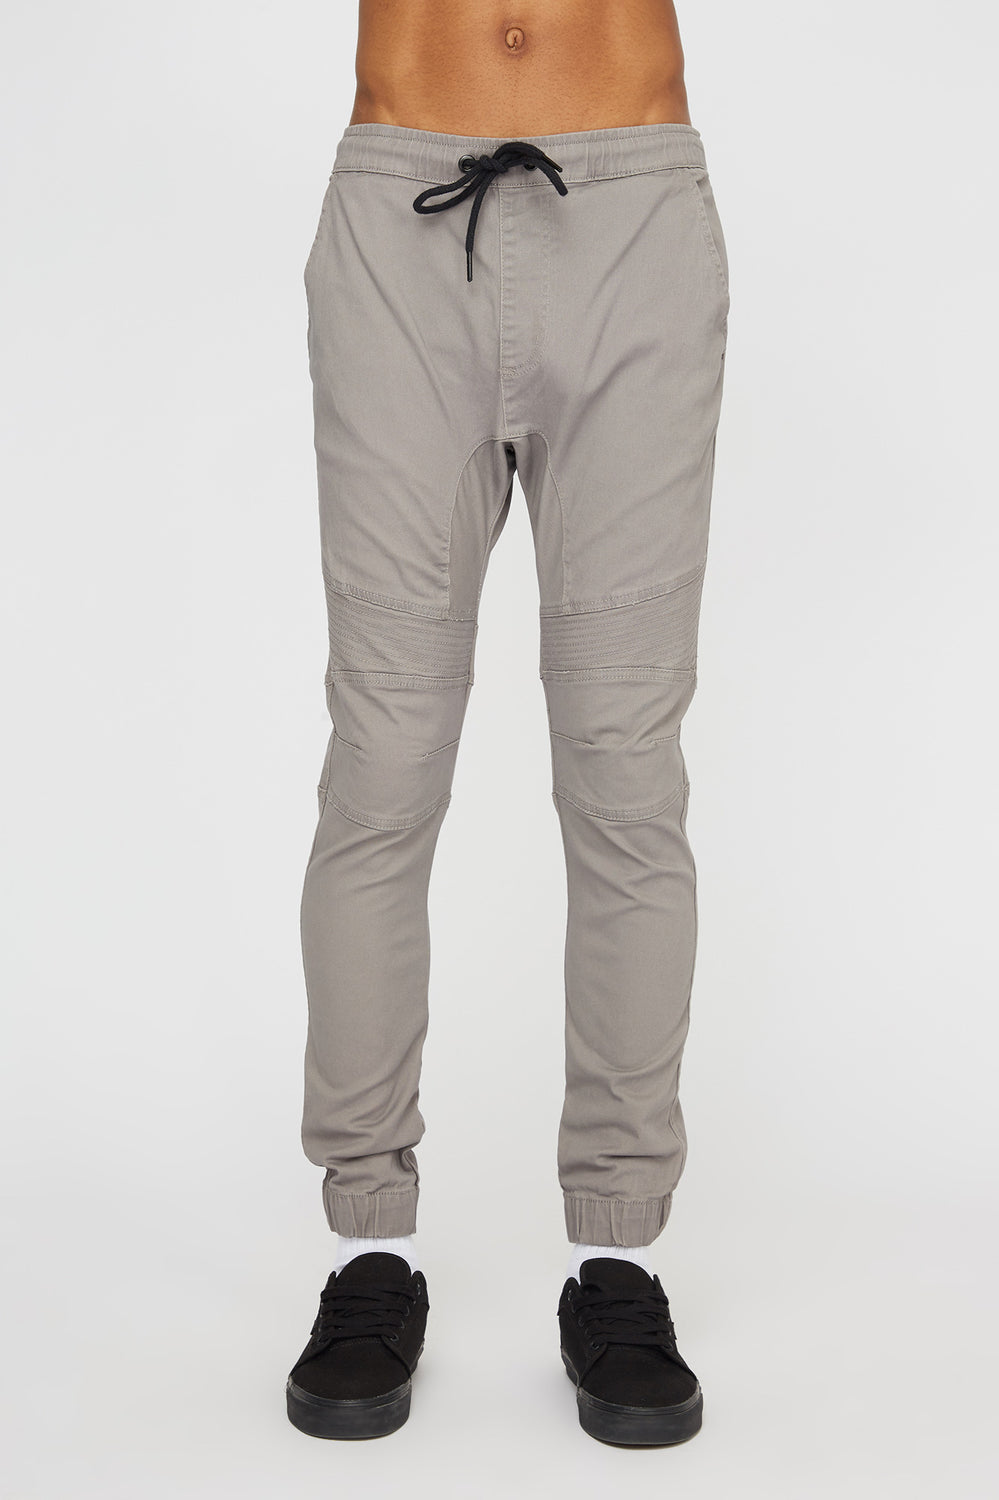 West49 Mens Moto Jogger Light Grey